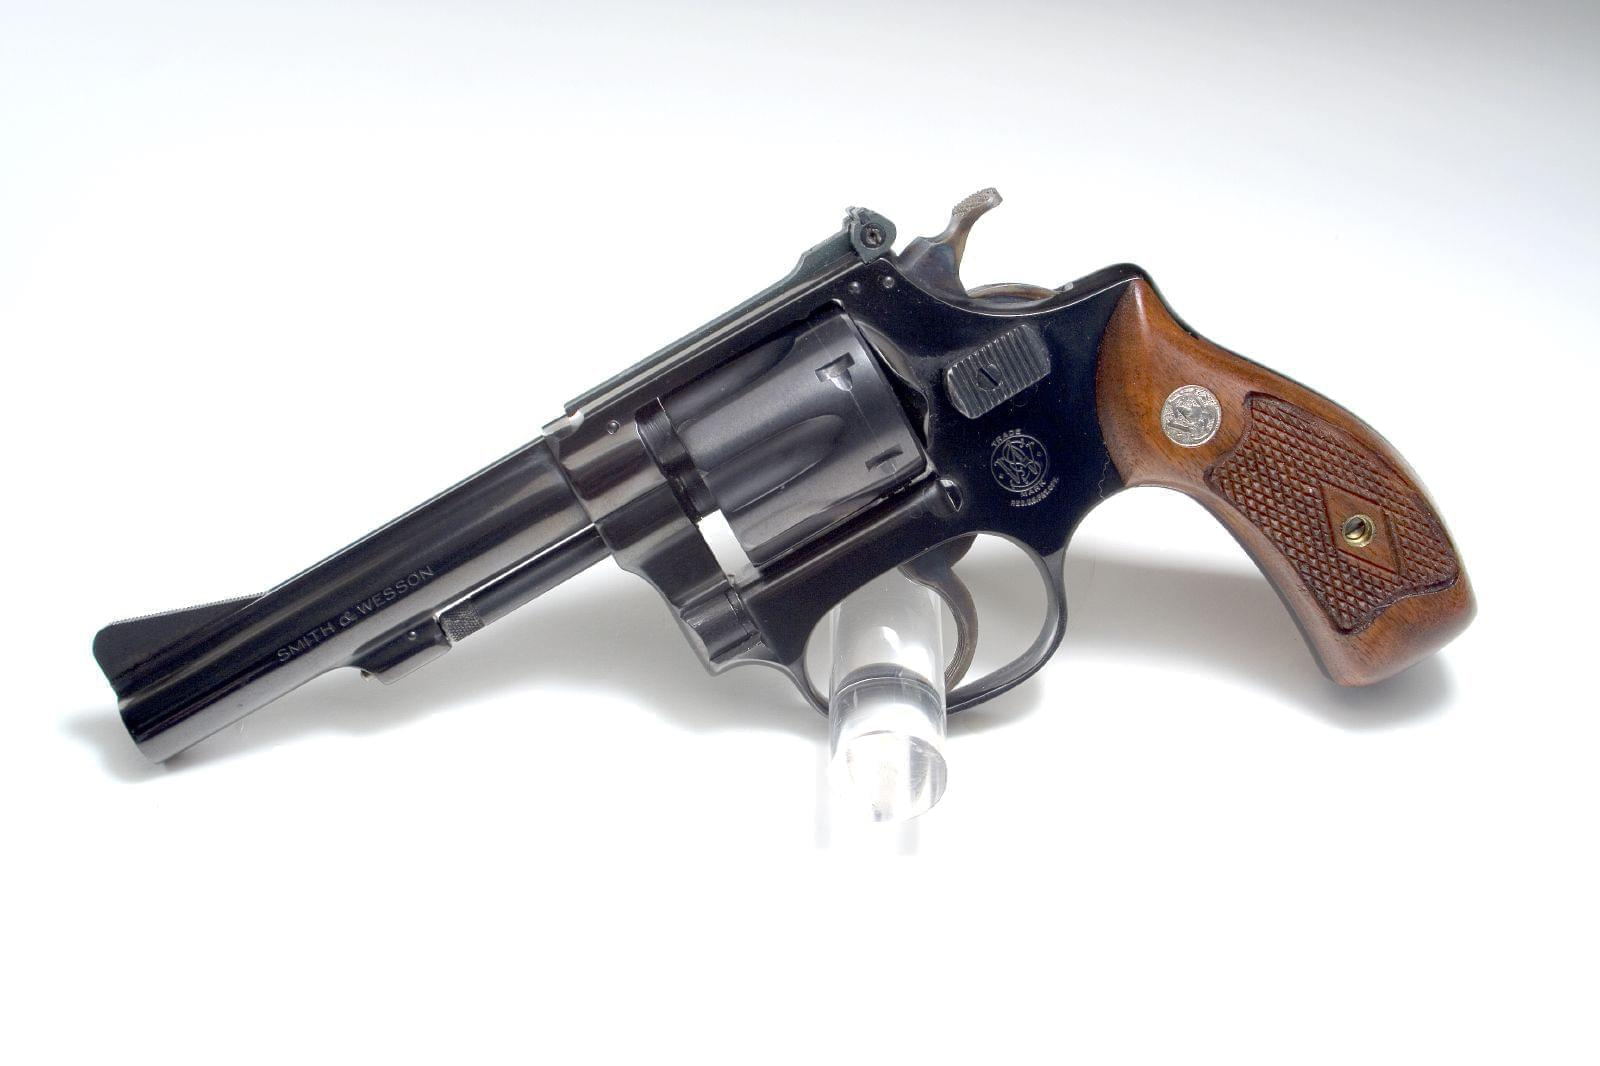 A Smith and Wesson revolver.